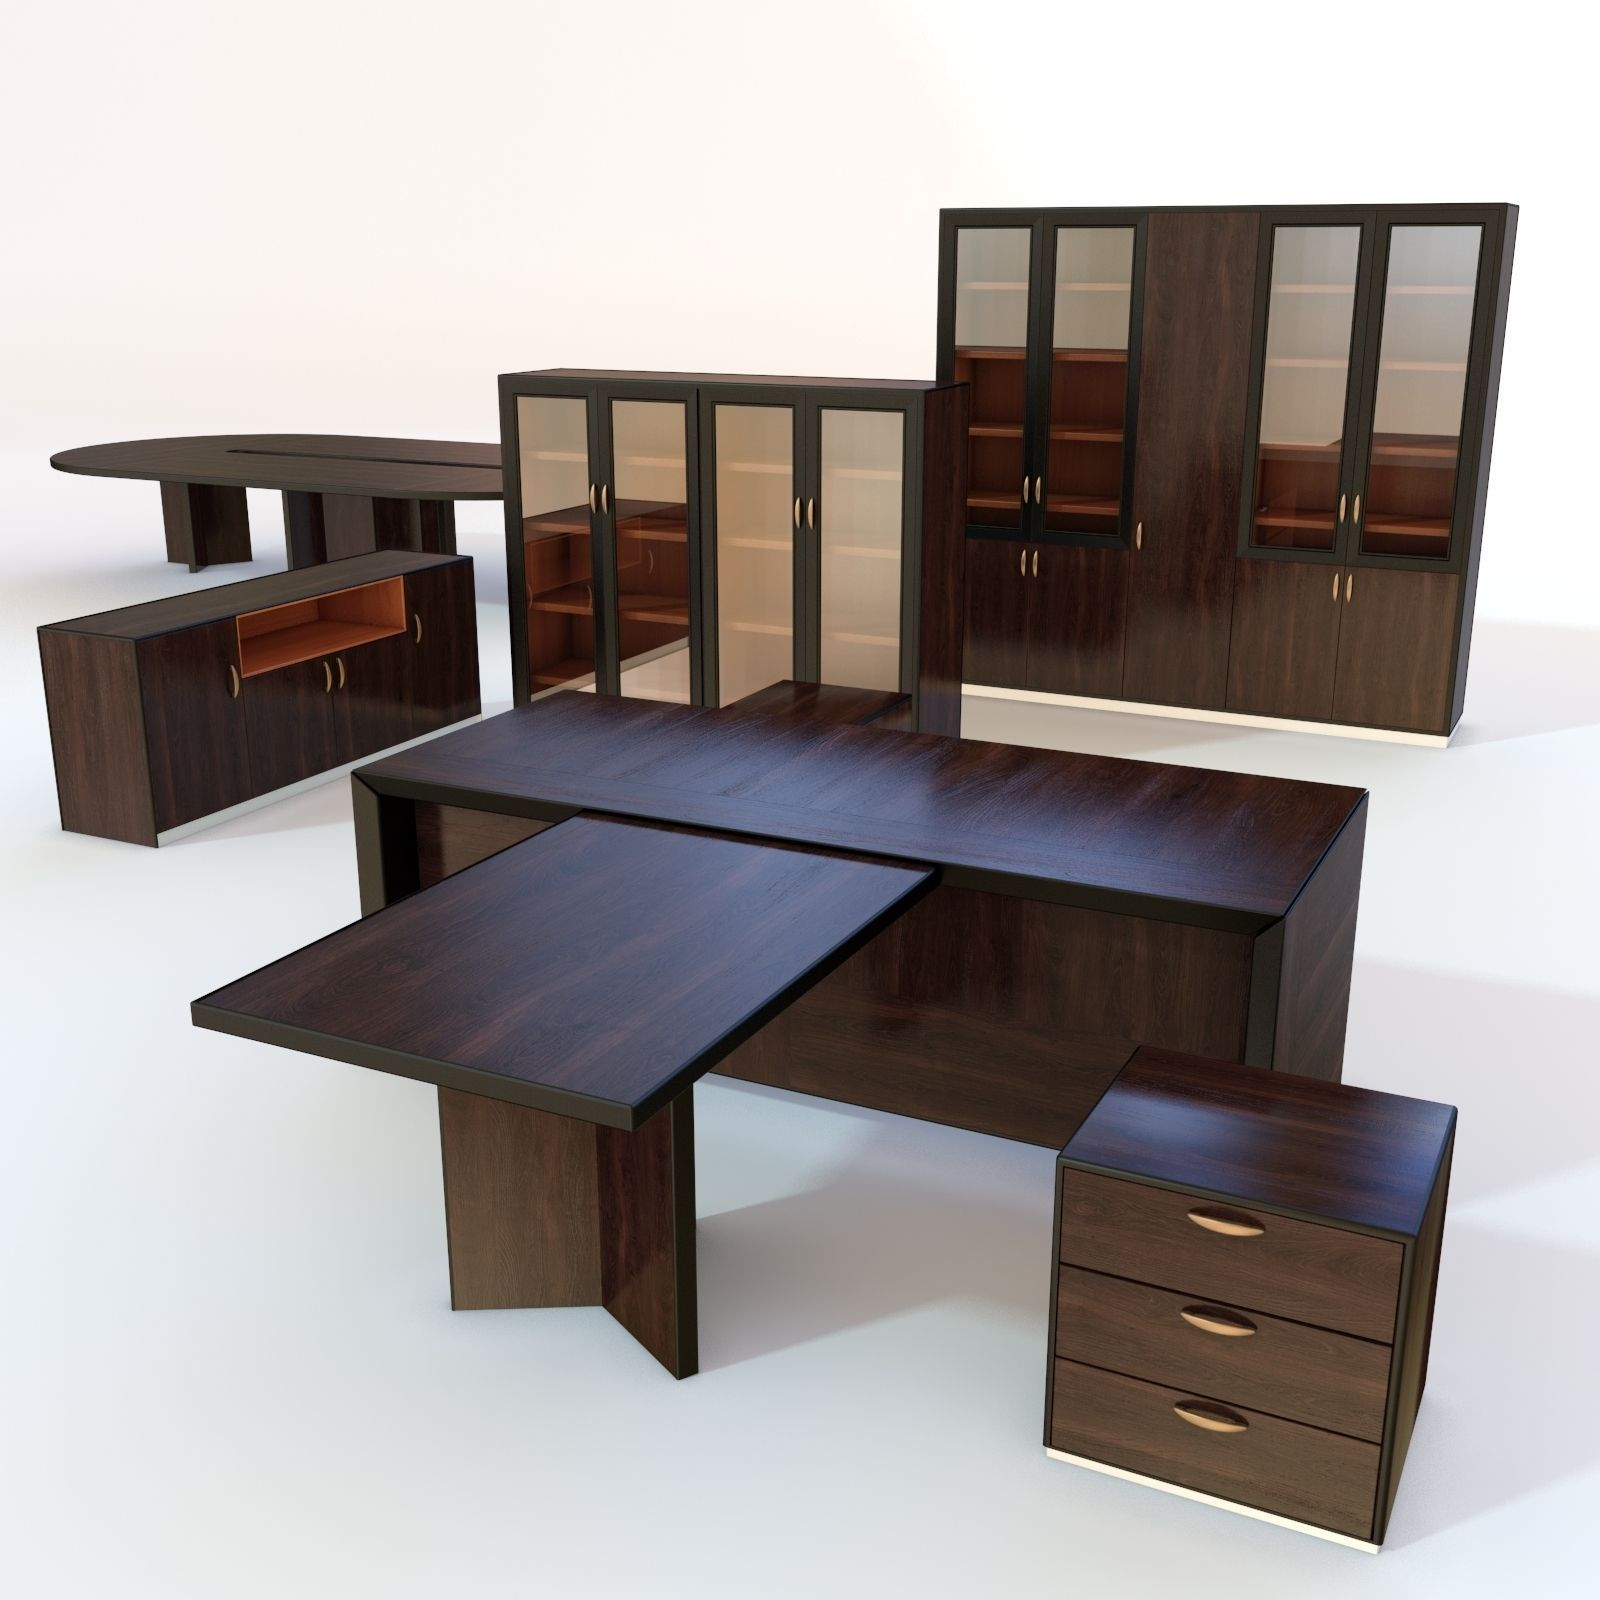 Office furniture 3 3D model | CGTrader